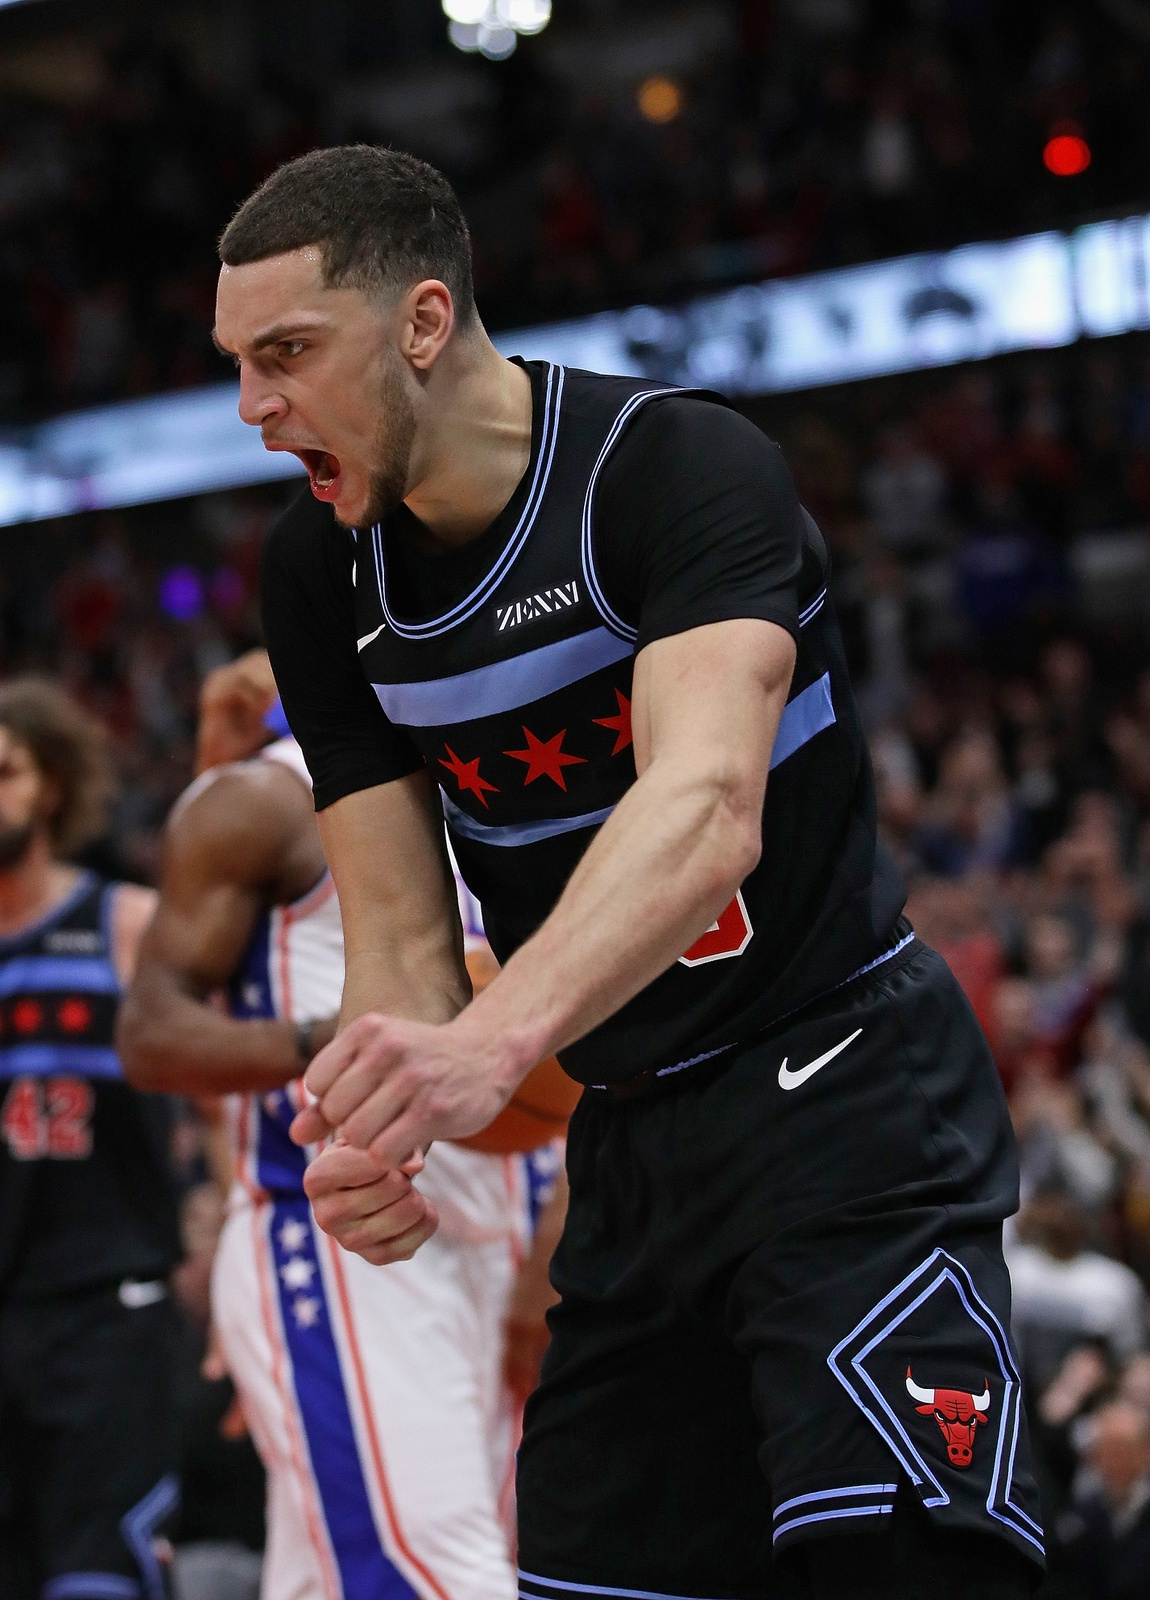 Zach LaVine #8 of the Chicago Bulls celebrates after hitting the game-winning shot against the Philadelphia 76ers at the United Center on March 06, 2019 in Chicago, Illinois. The Bulls defeated the 76ers 108-107.